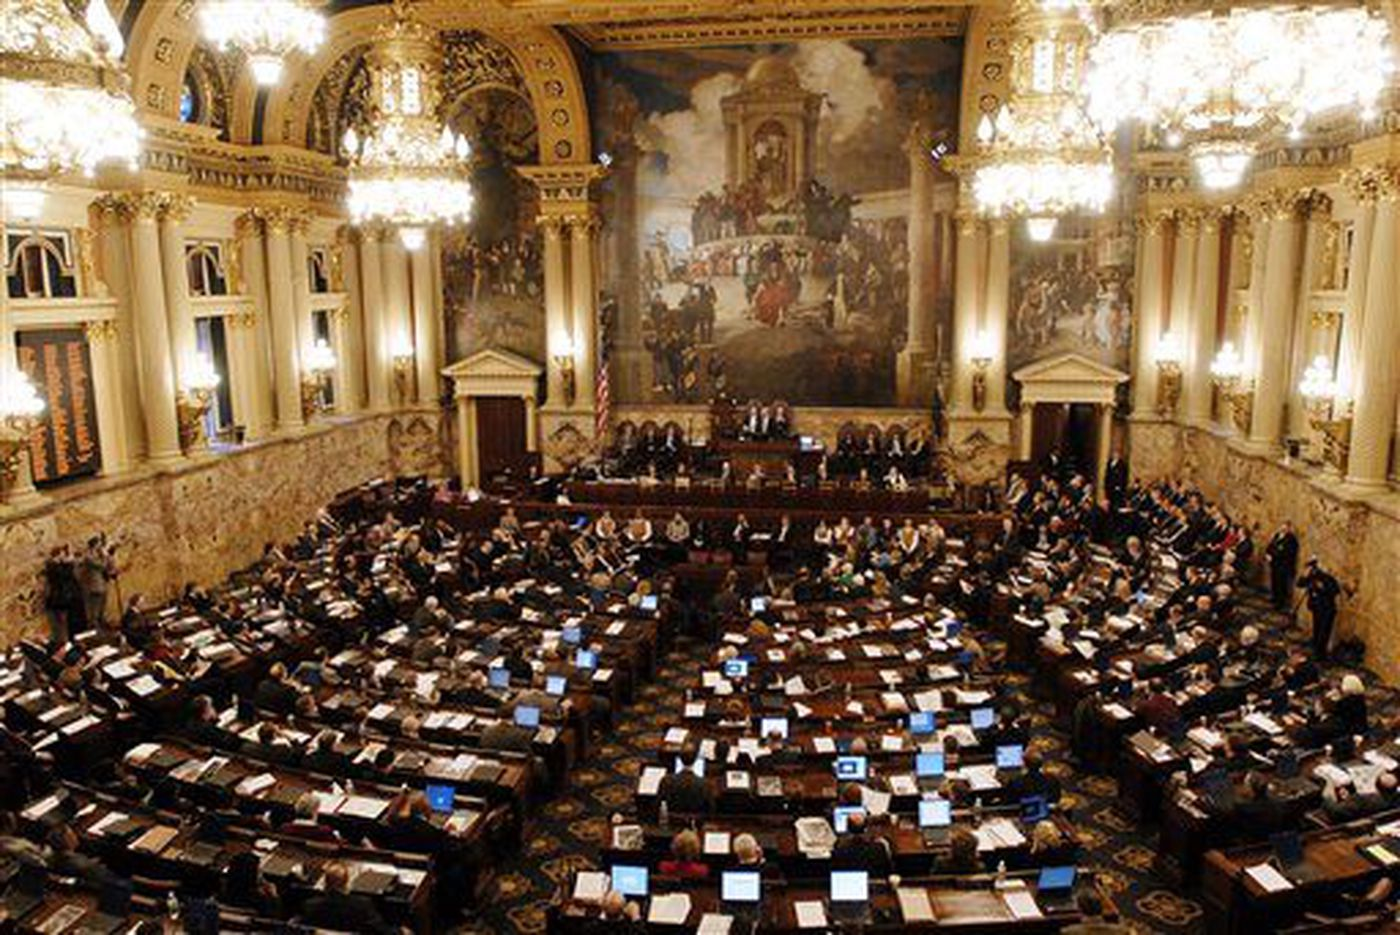 Pa. House approves budget plan Gov. Wolf calls 'irresponsible'